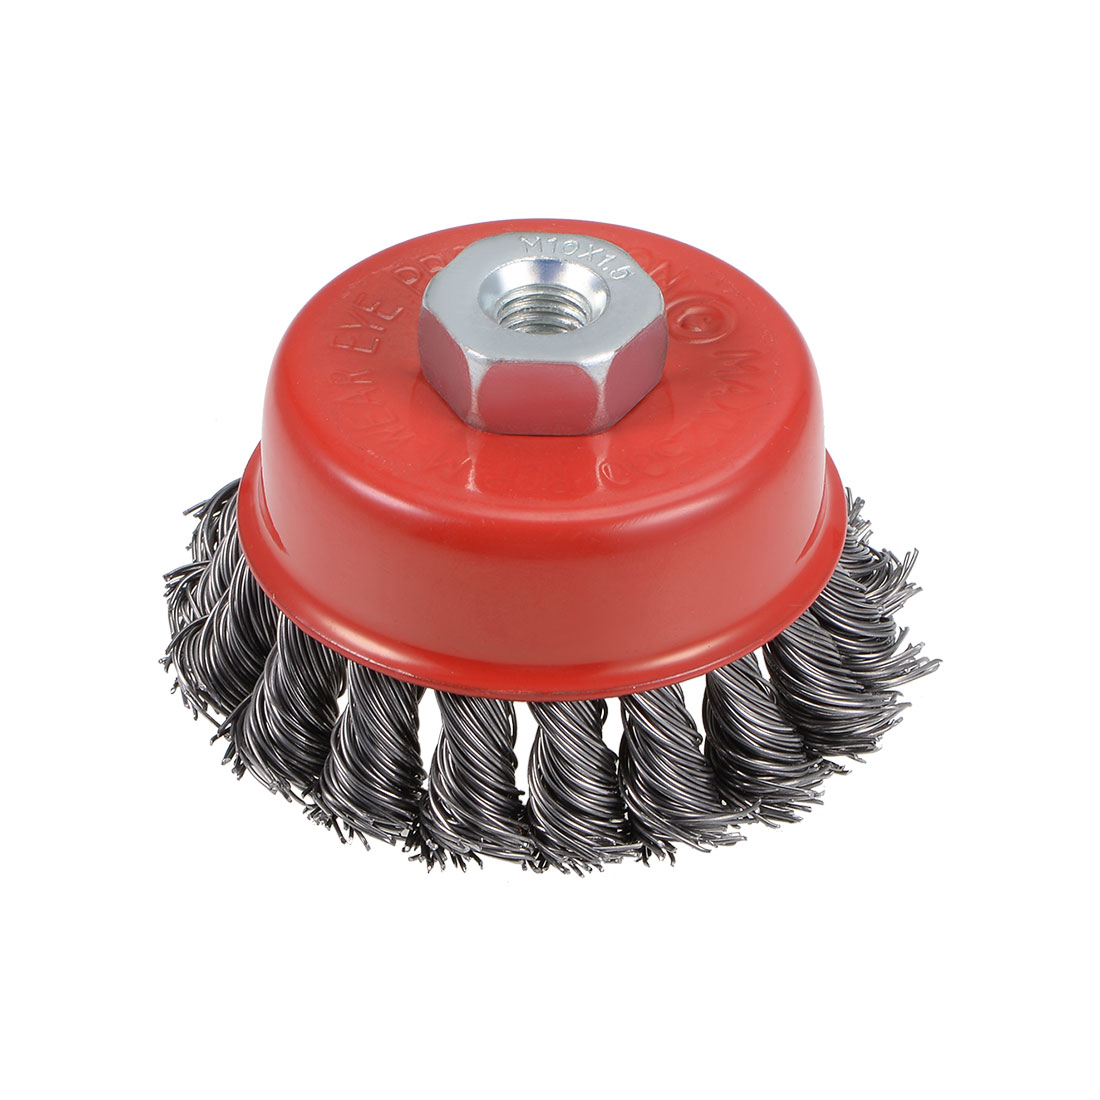 3-Inch Wire Cup Brush Twist Knotted Crimped Steel with M10 Threaded Hole